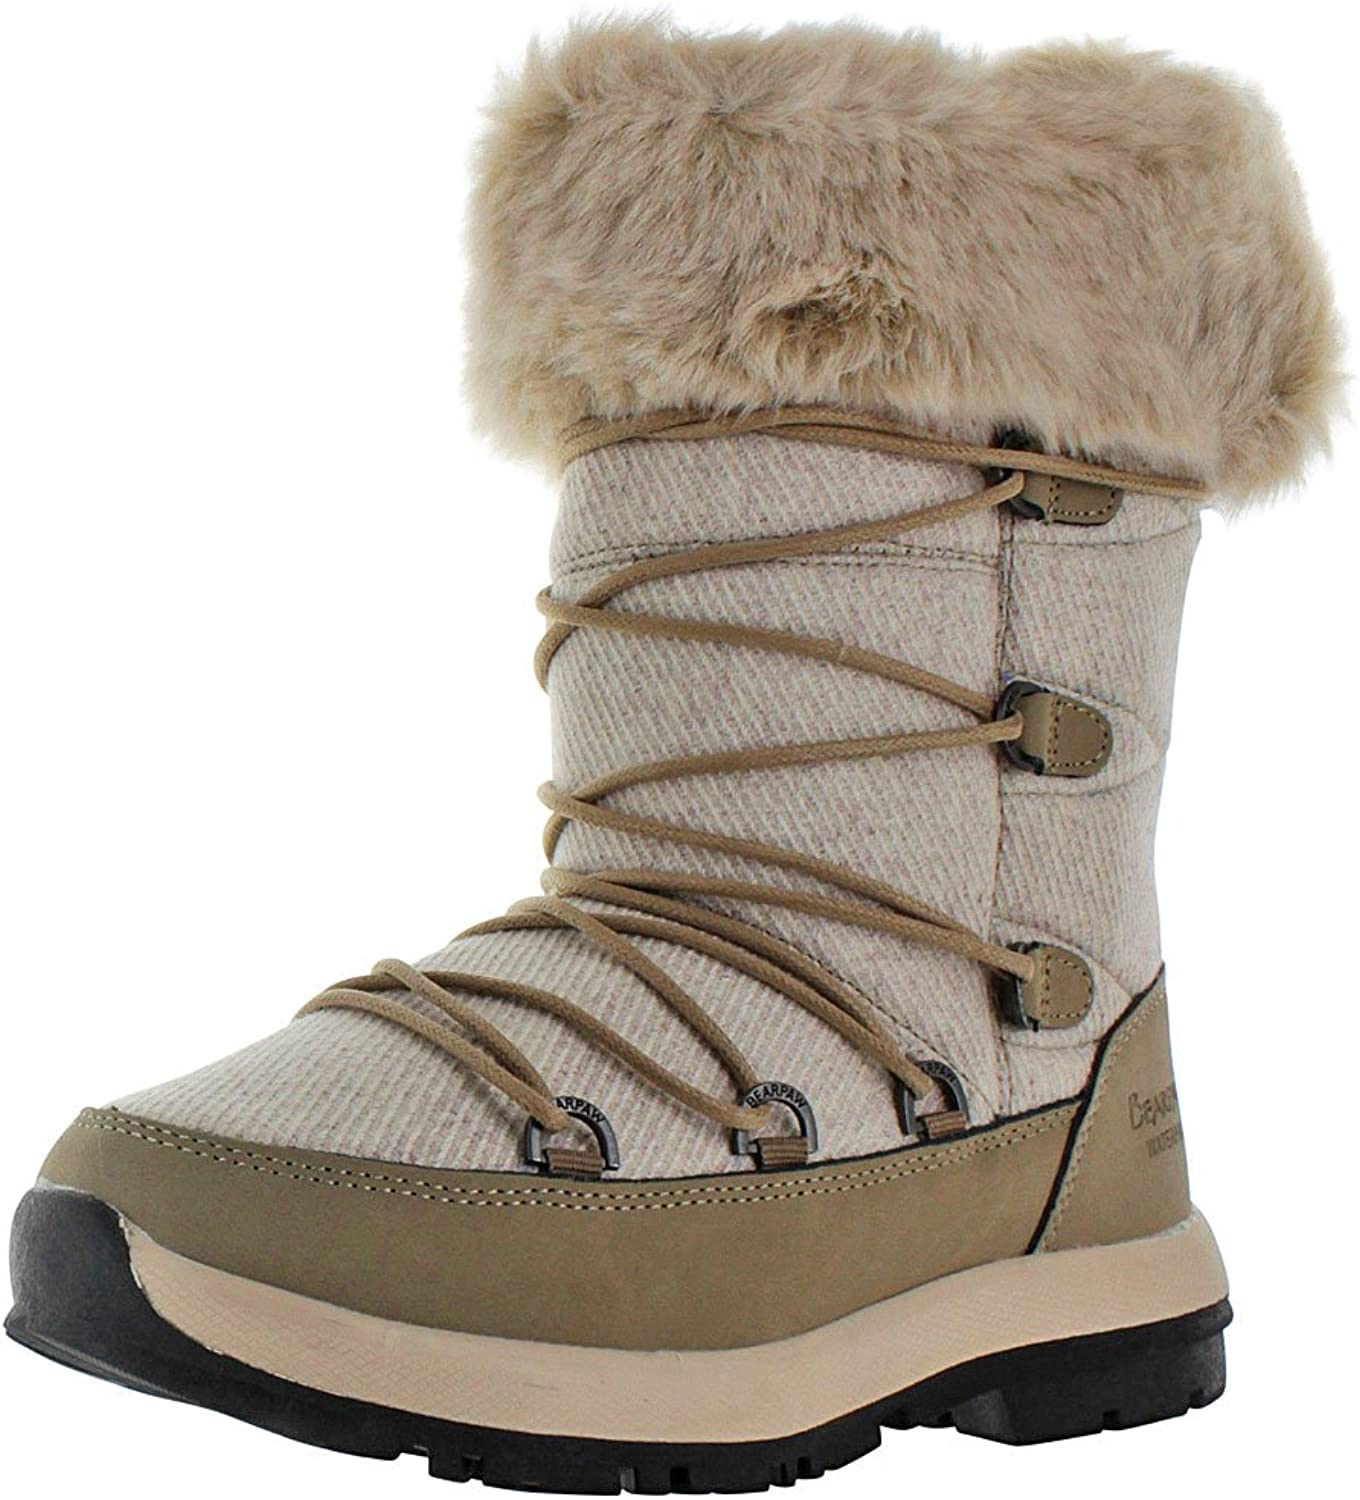 Bearpaw Womens Leslie Snow Boot